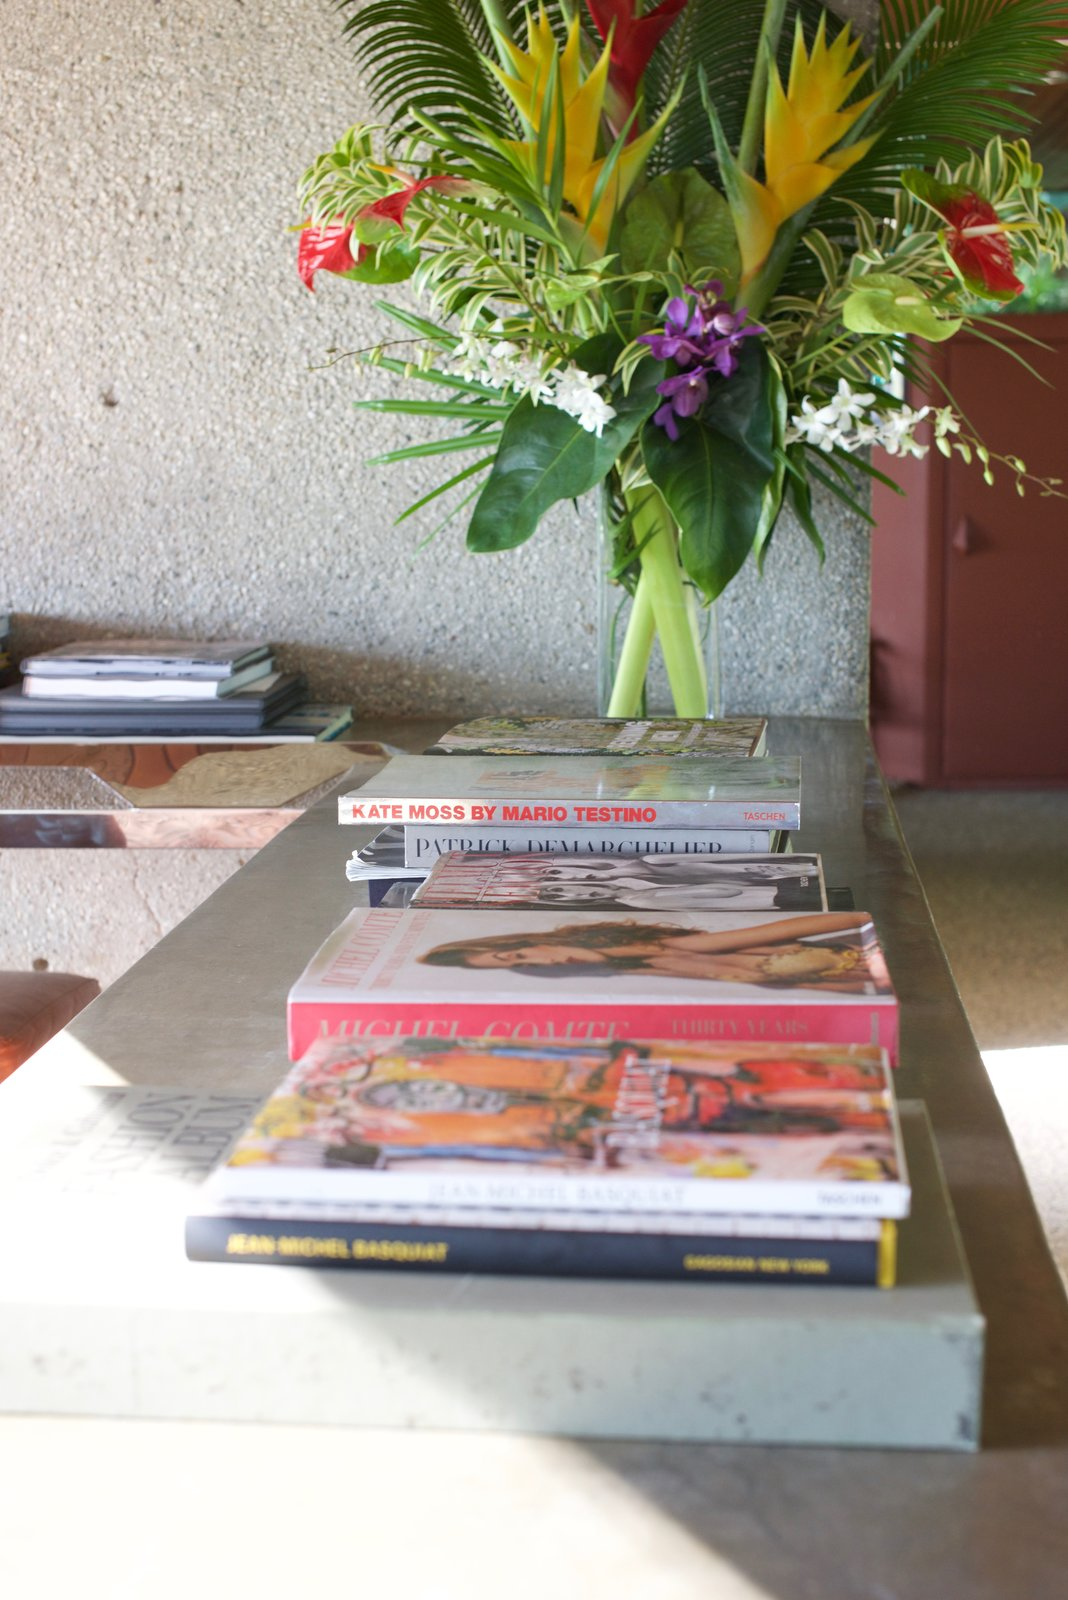 Goldstein's inspirations and experiences can be found throughout the house in photos, magazines, and books.  Behind the Scenes at John Lautner's Sheats-Goldstein Residence